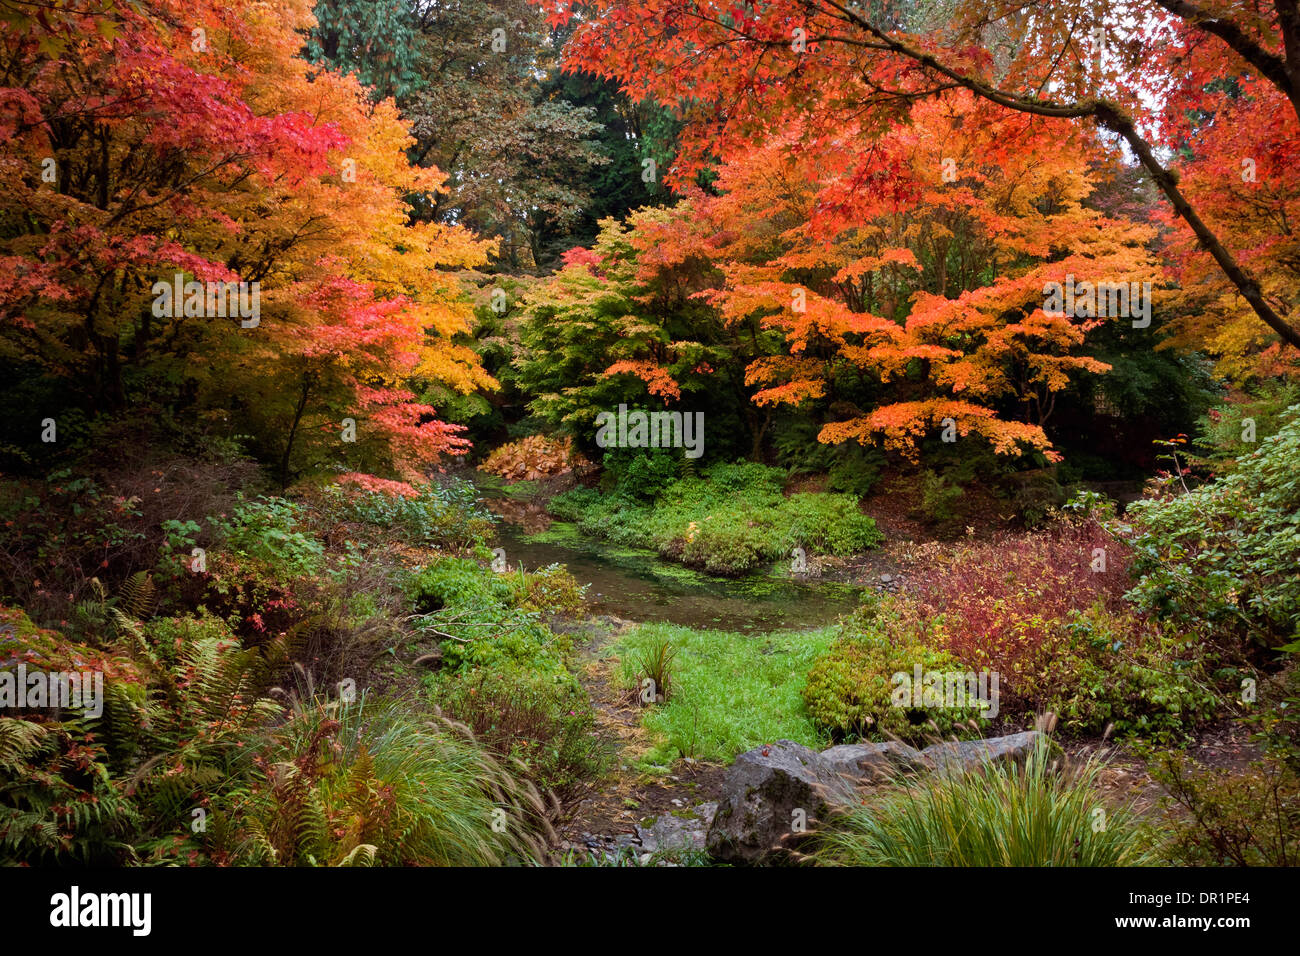 WASHINGTON - Fall color in the Yao Garden section of the Bellevue ...